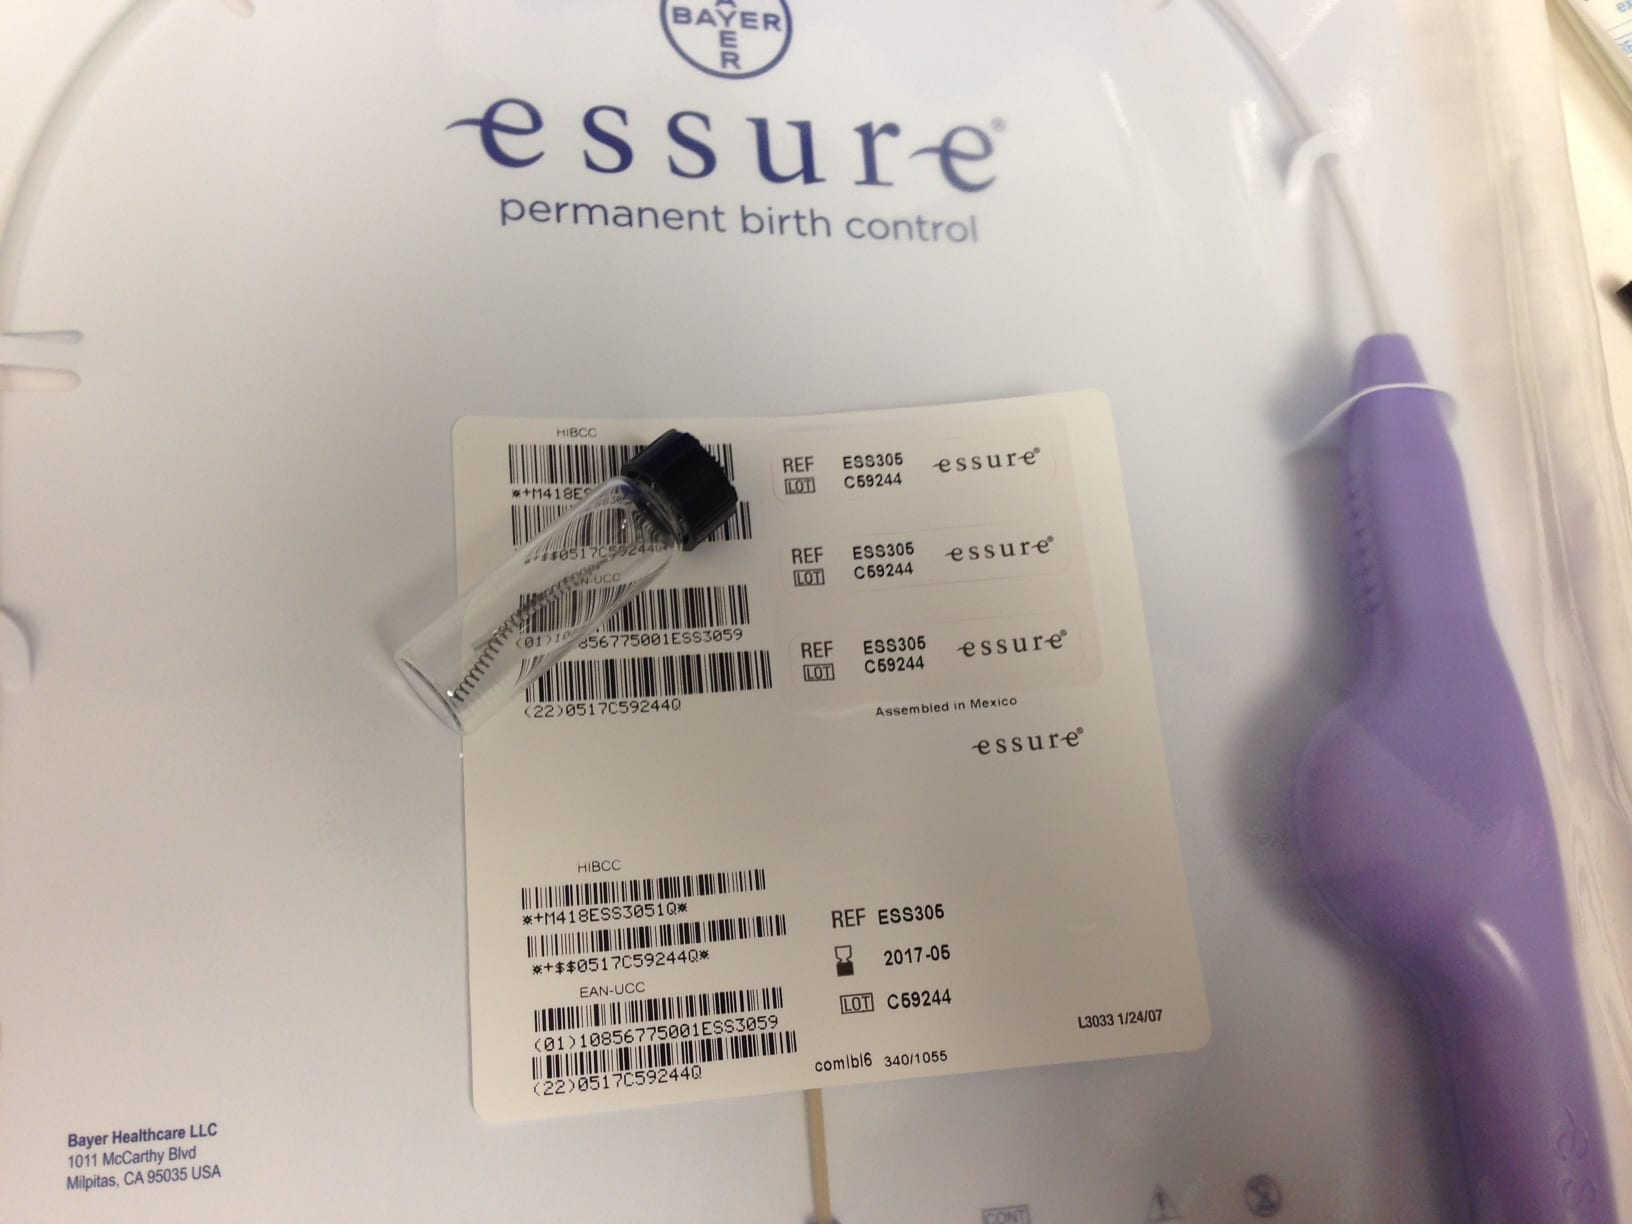 An Essure Kit; image courtesy of www.kcrg.com.